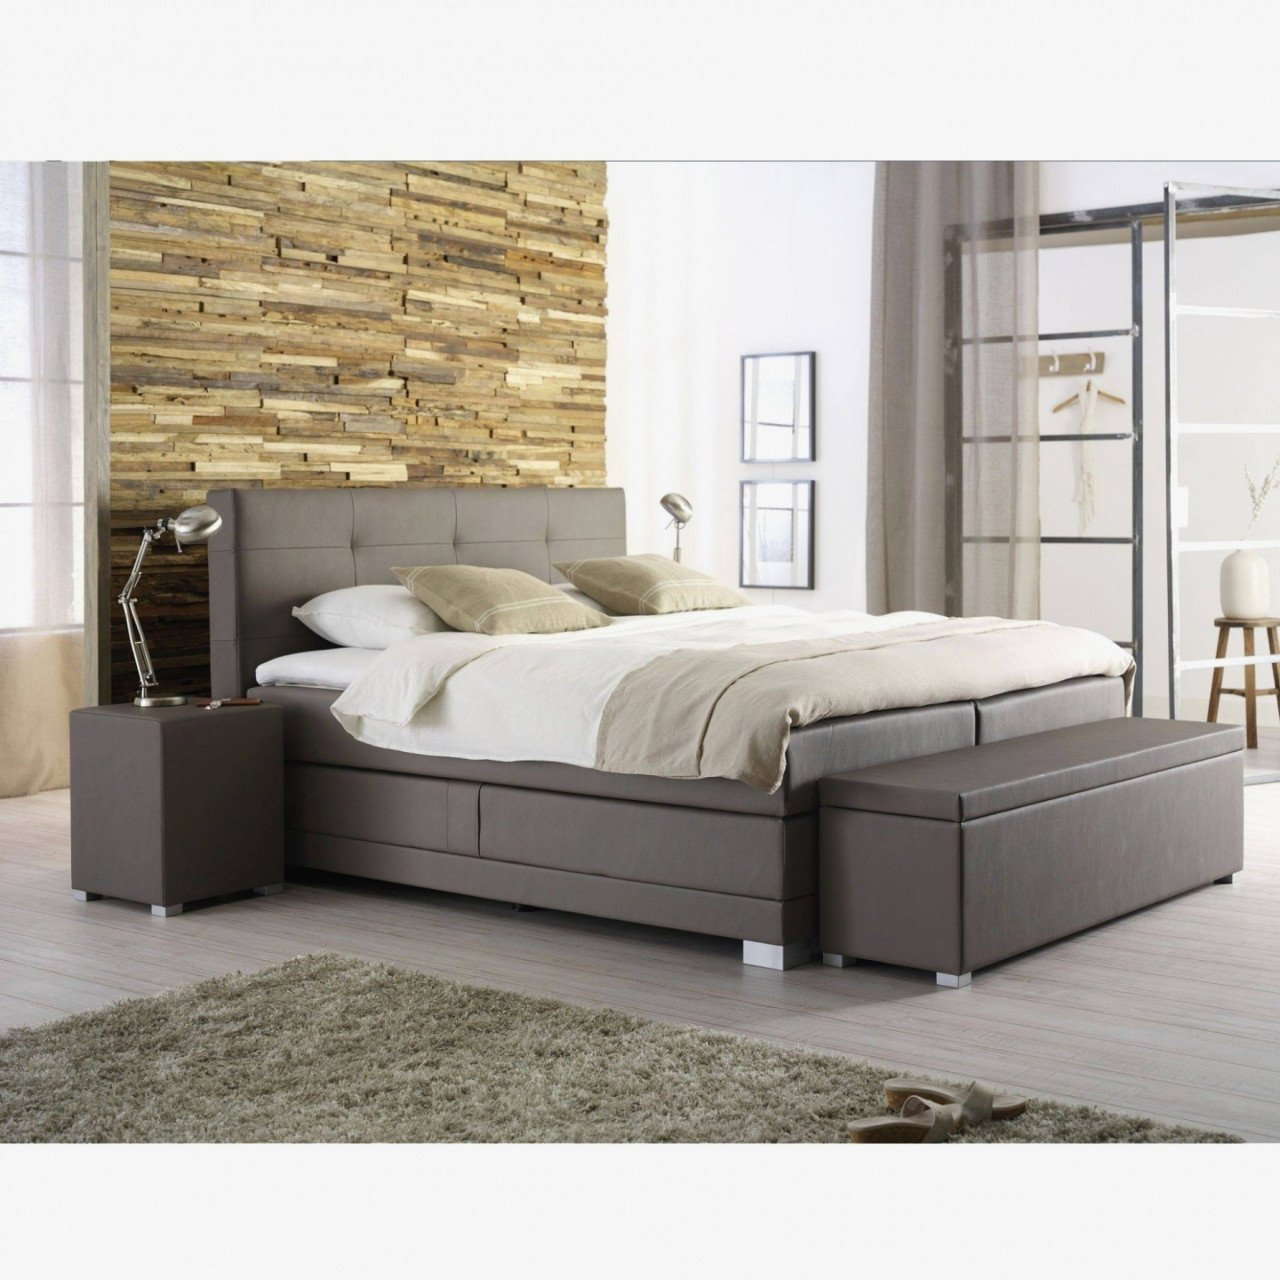 Full Size Bedroom Furniture Set Unique Bed with Drawers — Procura Home Blog